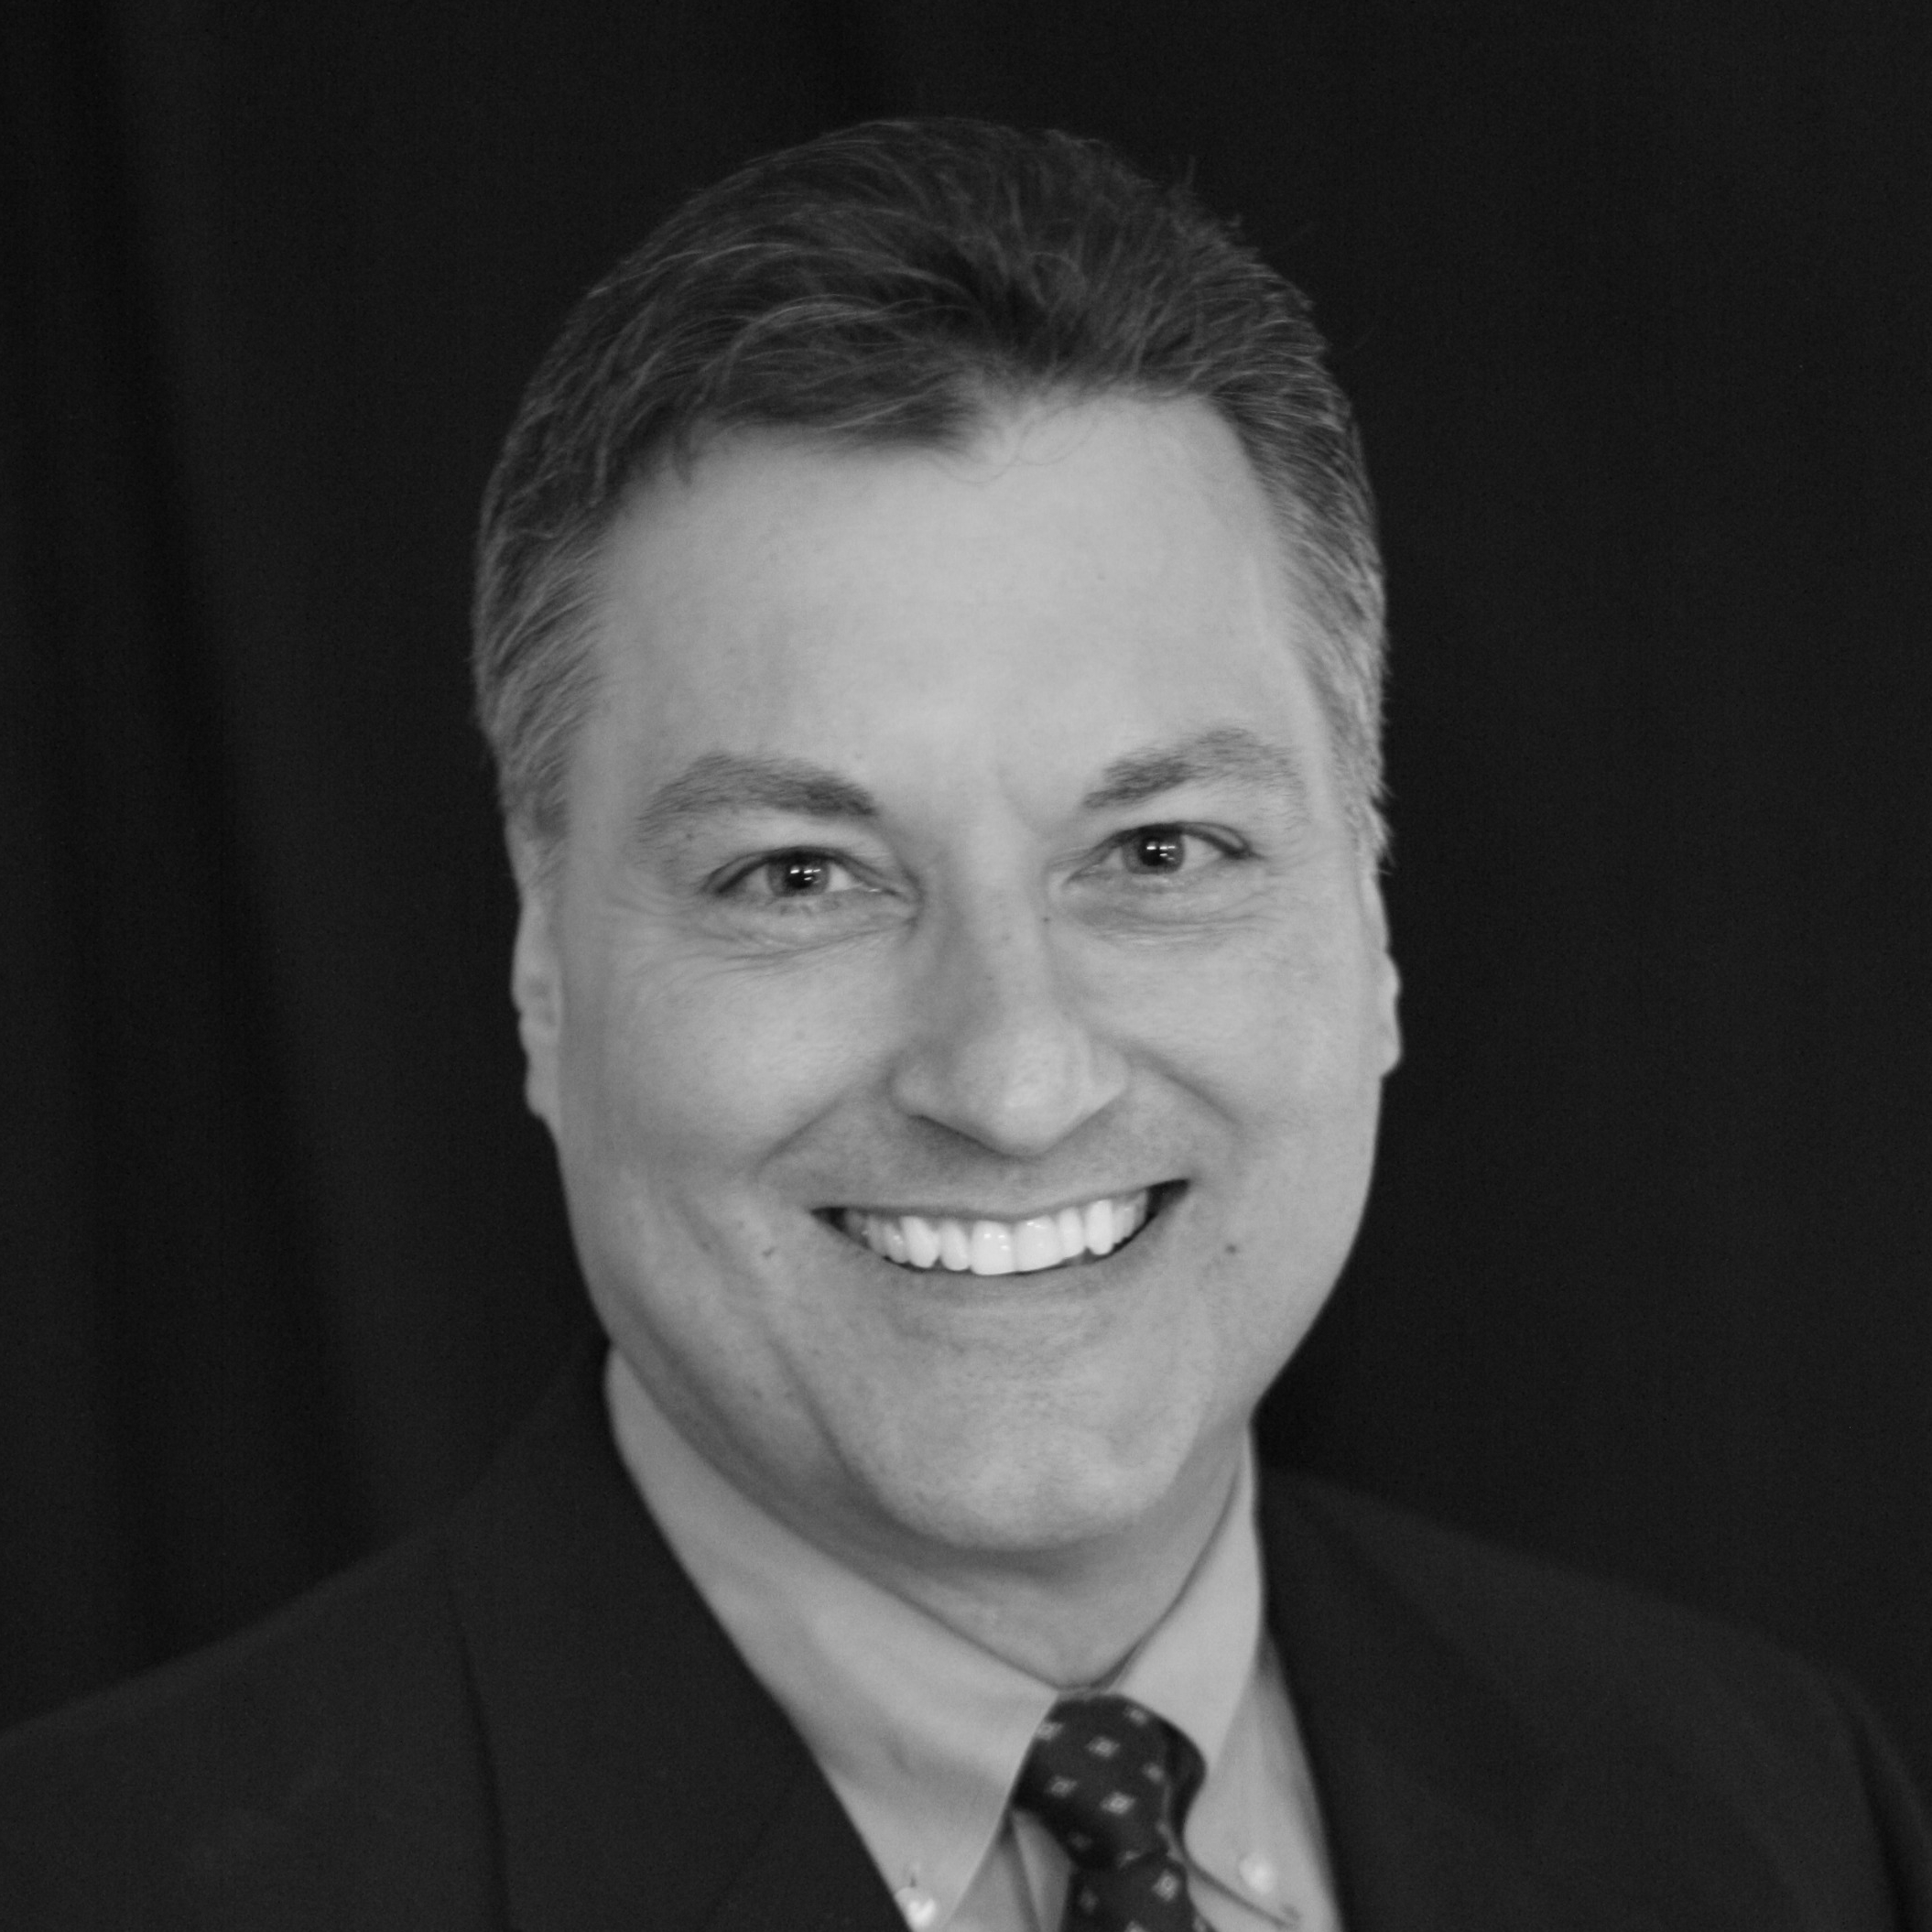 Frank Cardini, CPA, Chief Financial Officer